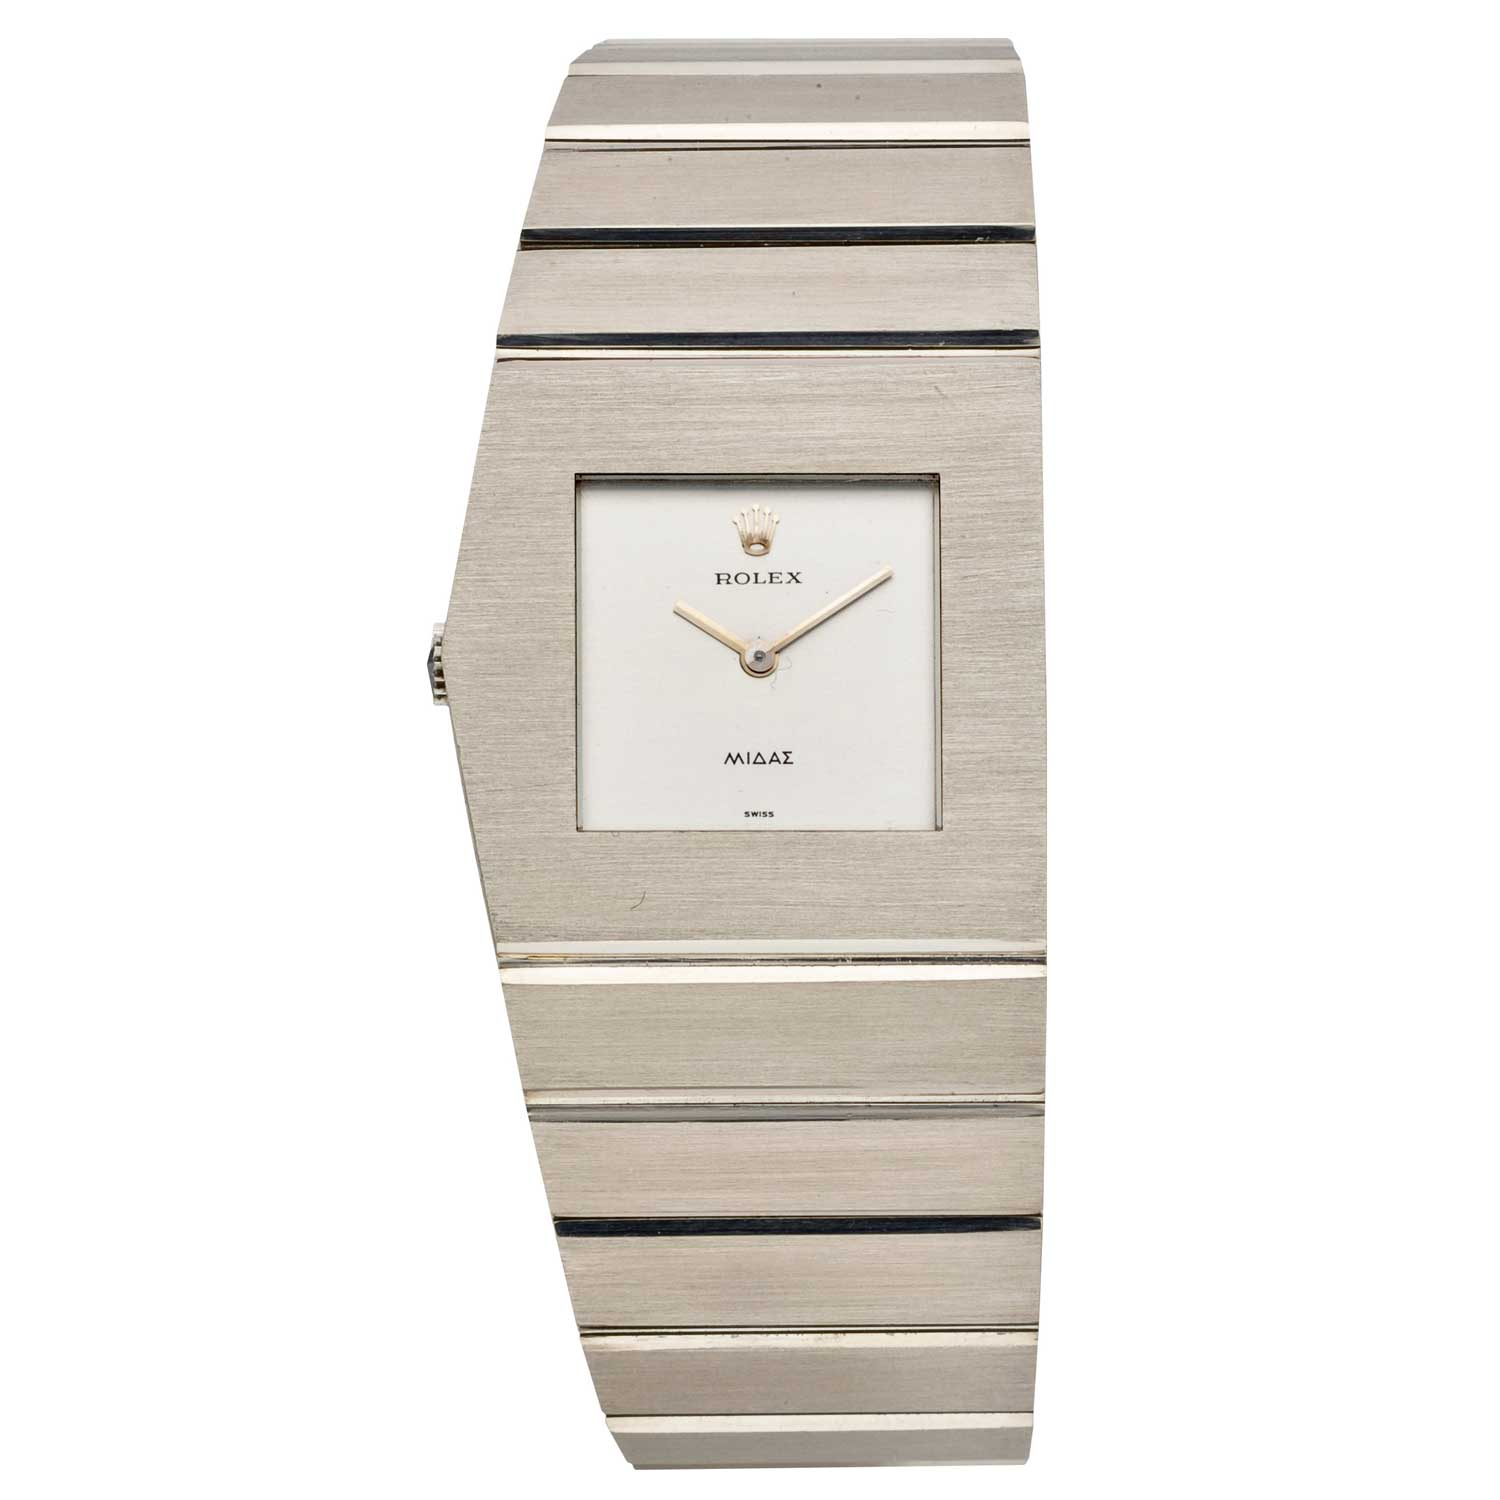 Ref. 4315 in white gold, brushed, with a silver dial, circa 1975